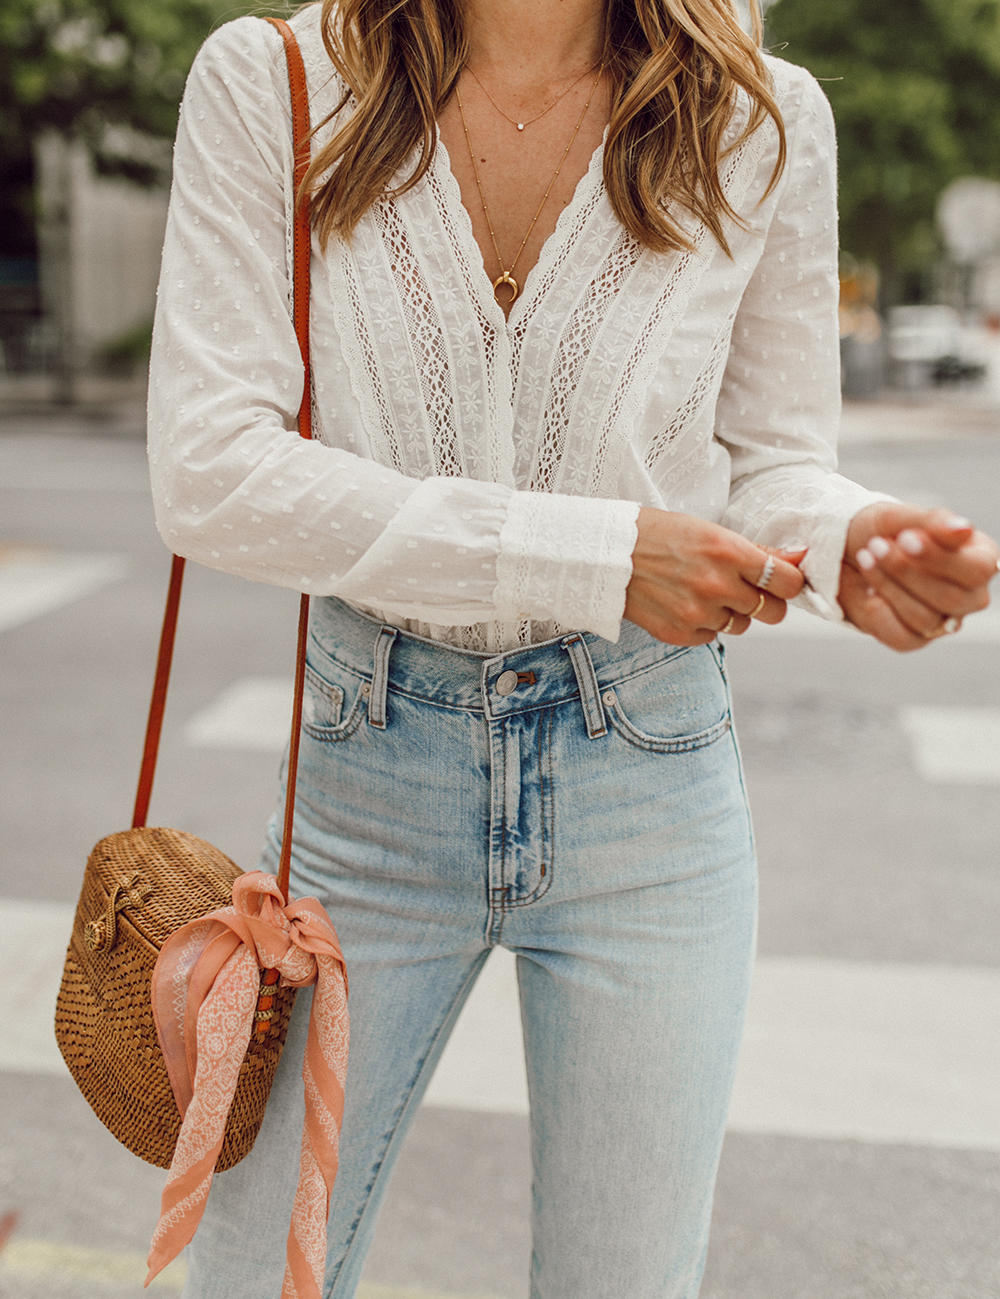 livvland-blog-olivia-watson-austin-texas-fashion-lifestyle-blogger-sezane-lace-deep-v-top-rattan-bag-madewell-summer-jeans-1